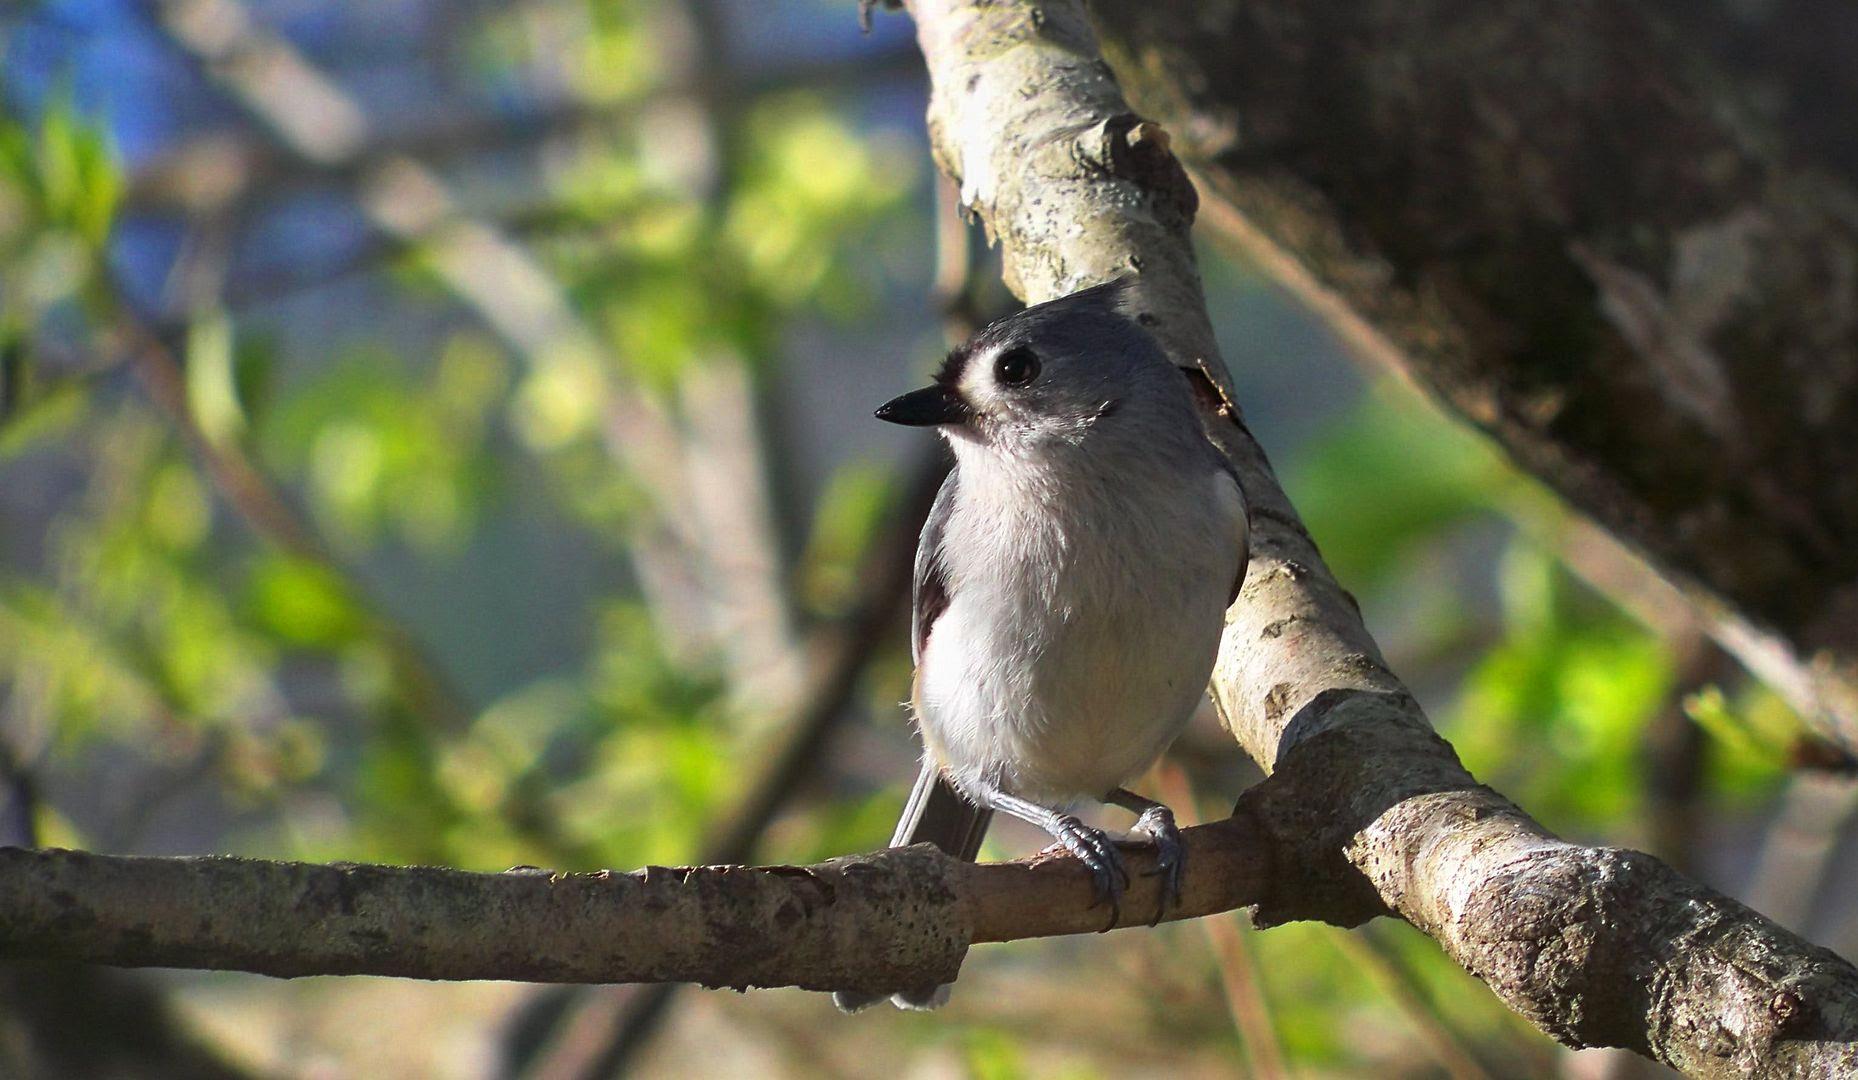 Tufted Titmouse by Bobby Coggins Click for larger image